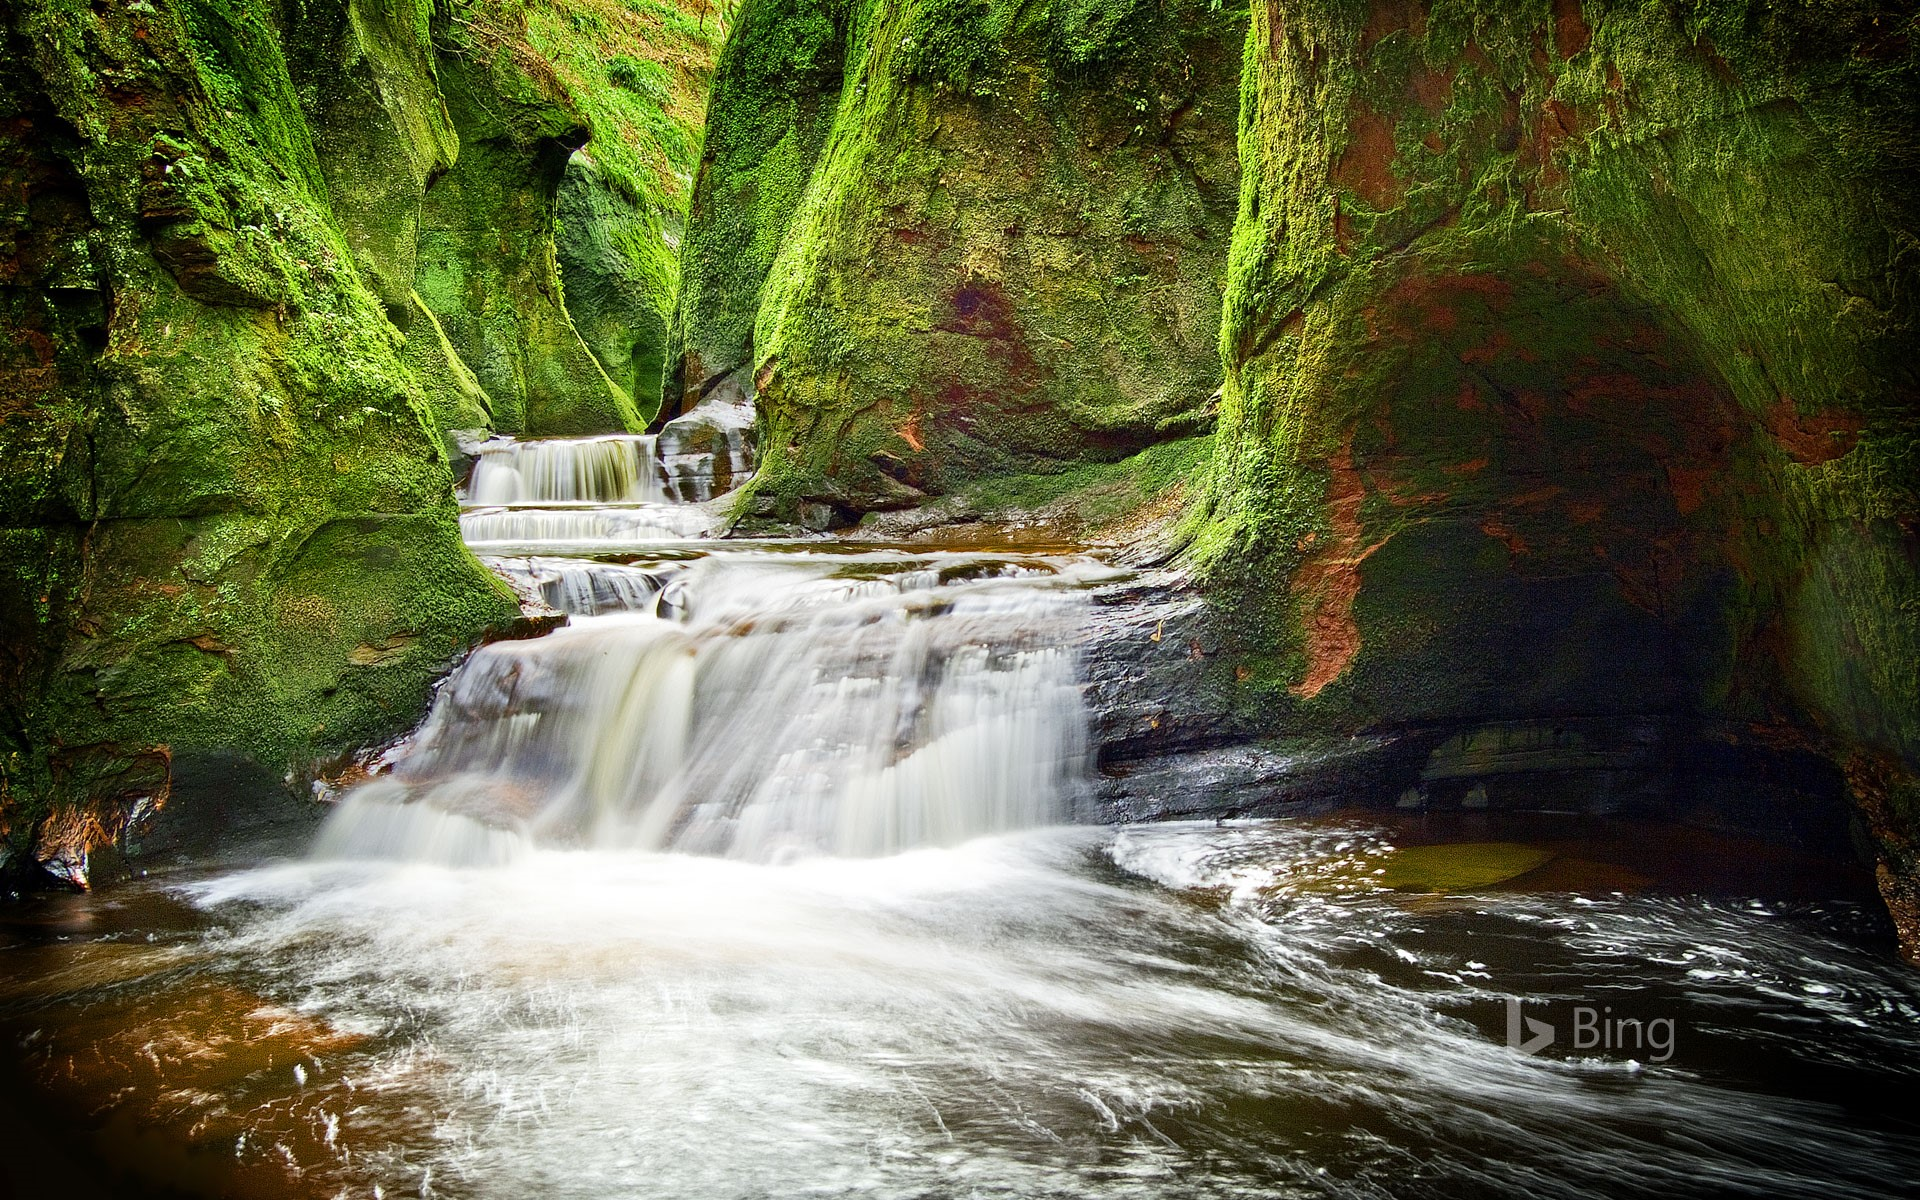 Finnich Glen in Stirlingshire, Scotland